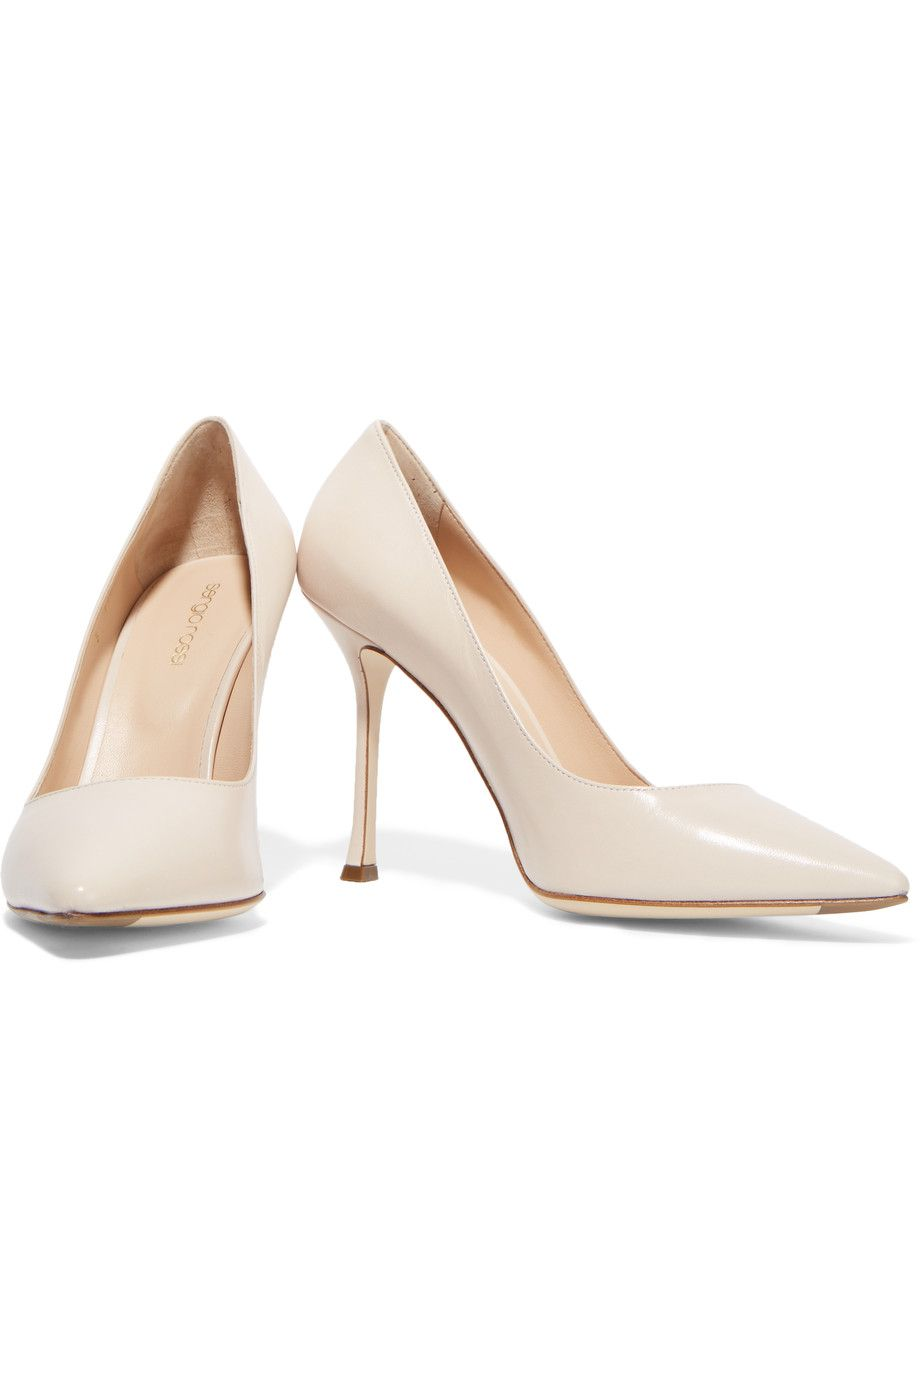 Sergio RossiLeather pumps